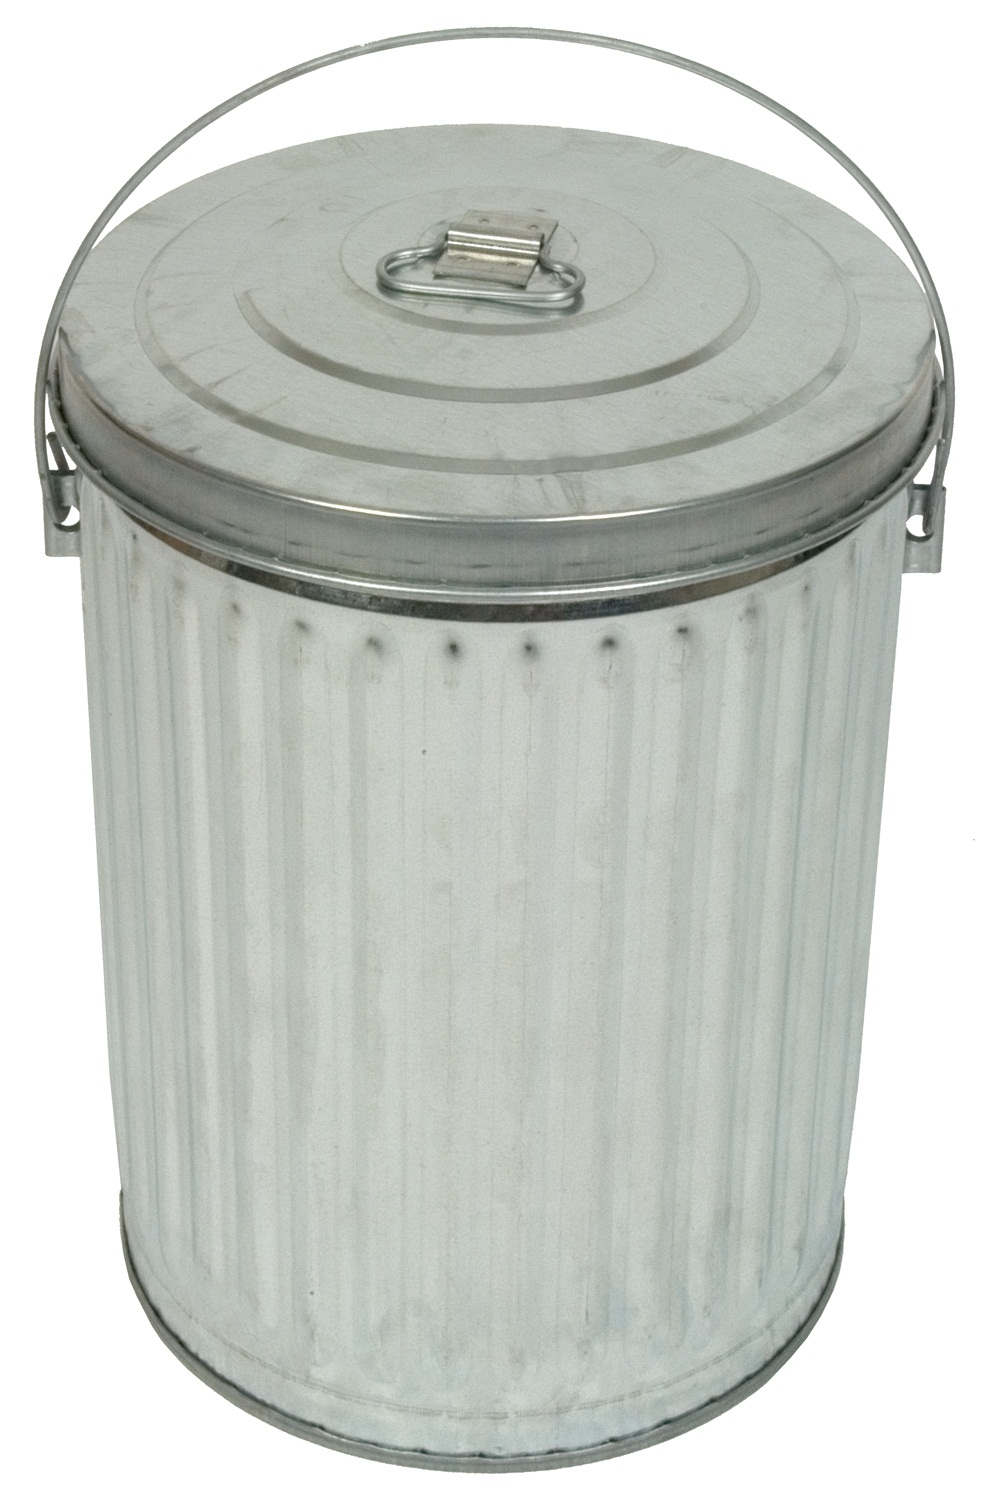 Galvanized Cans and Lids